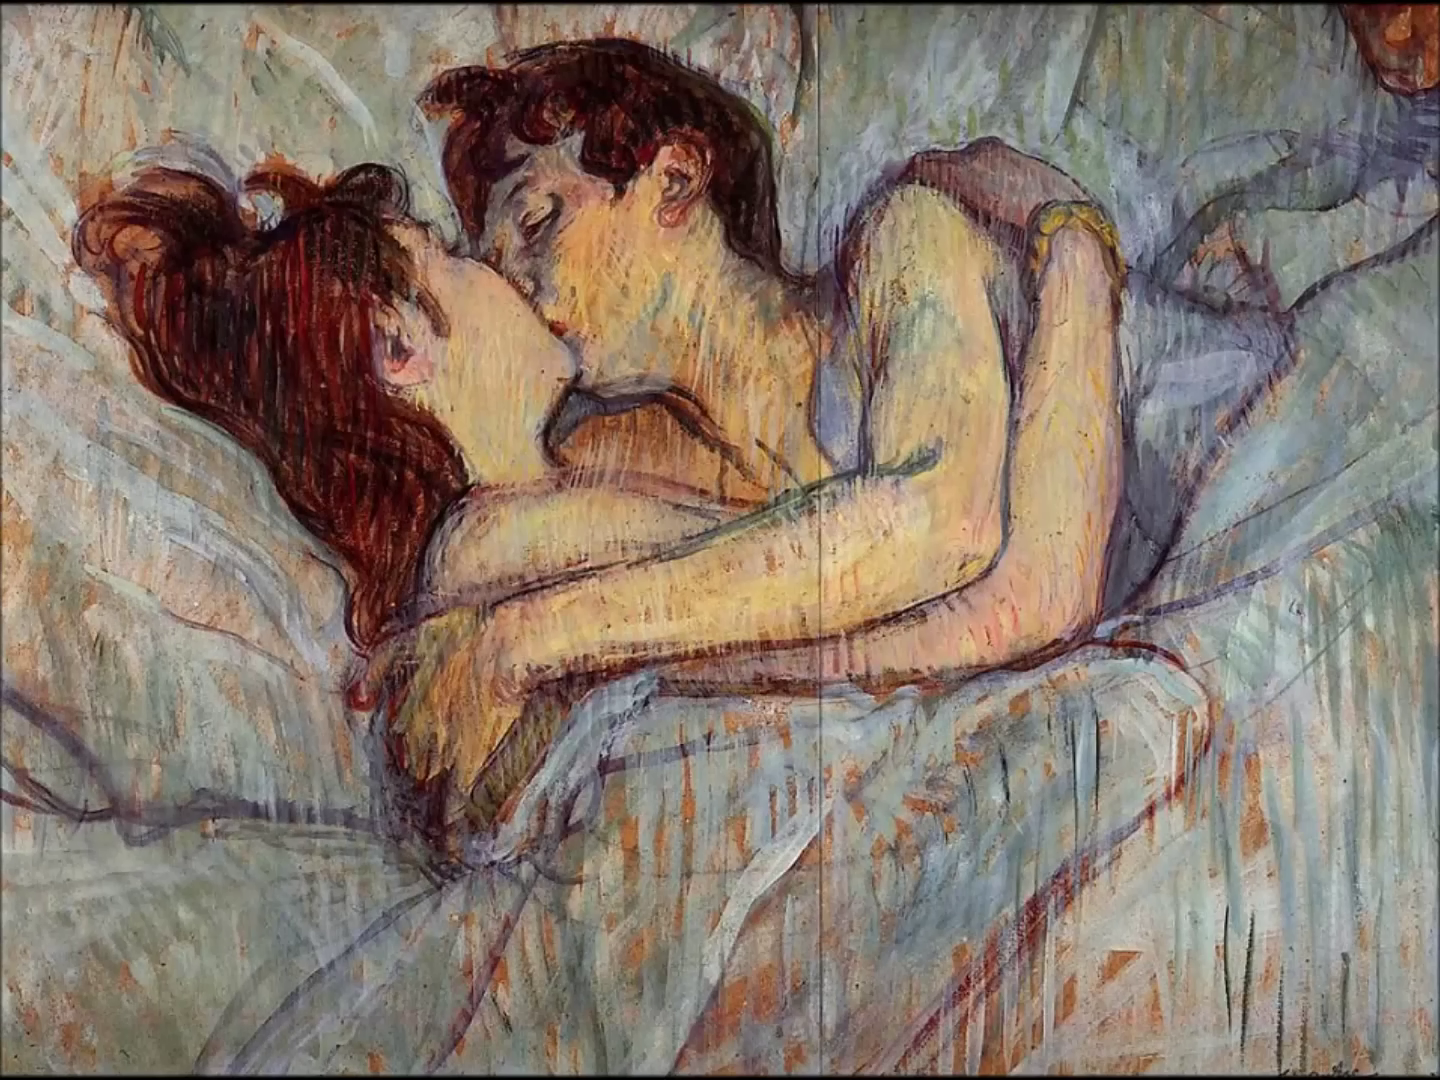 In Bed: The Kiss, by Toulouse-Lautrec